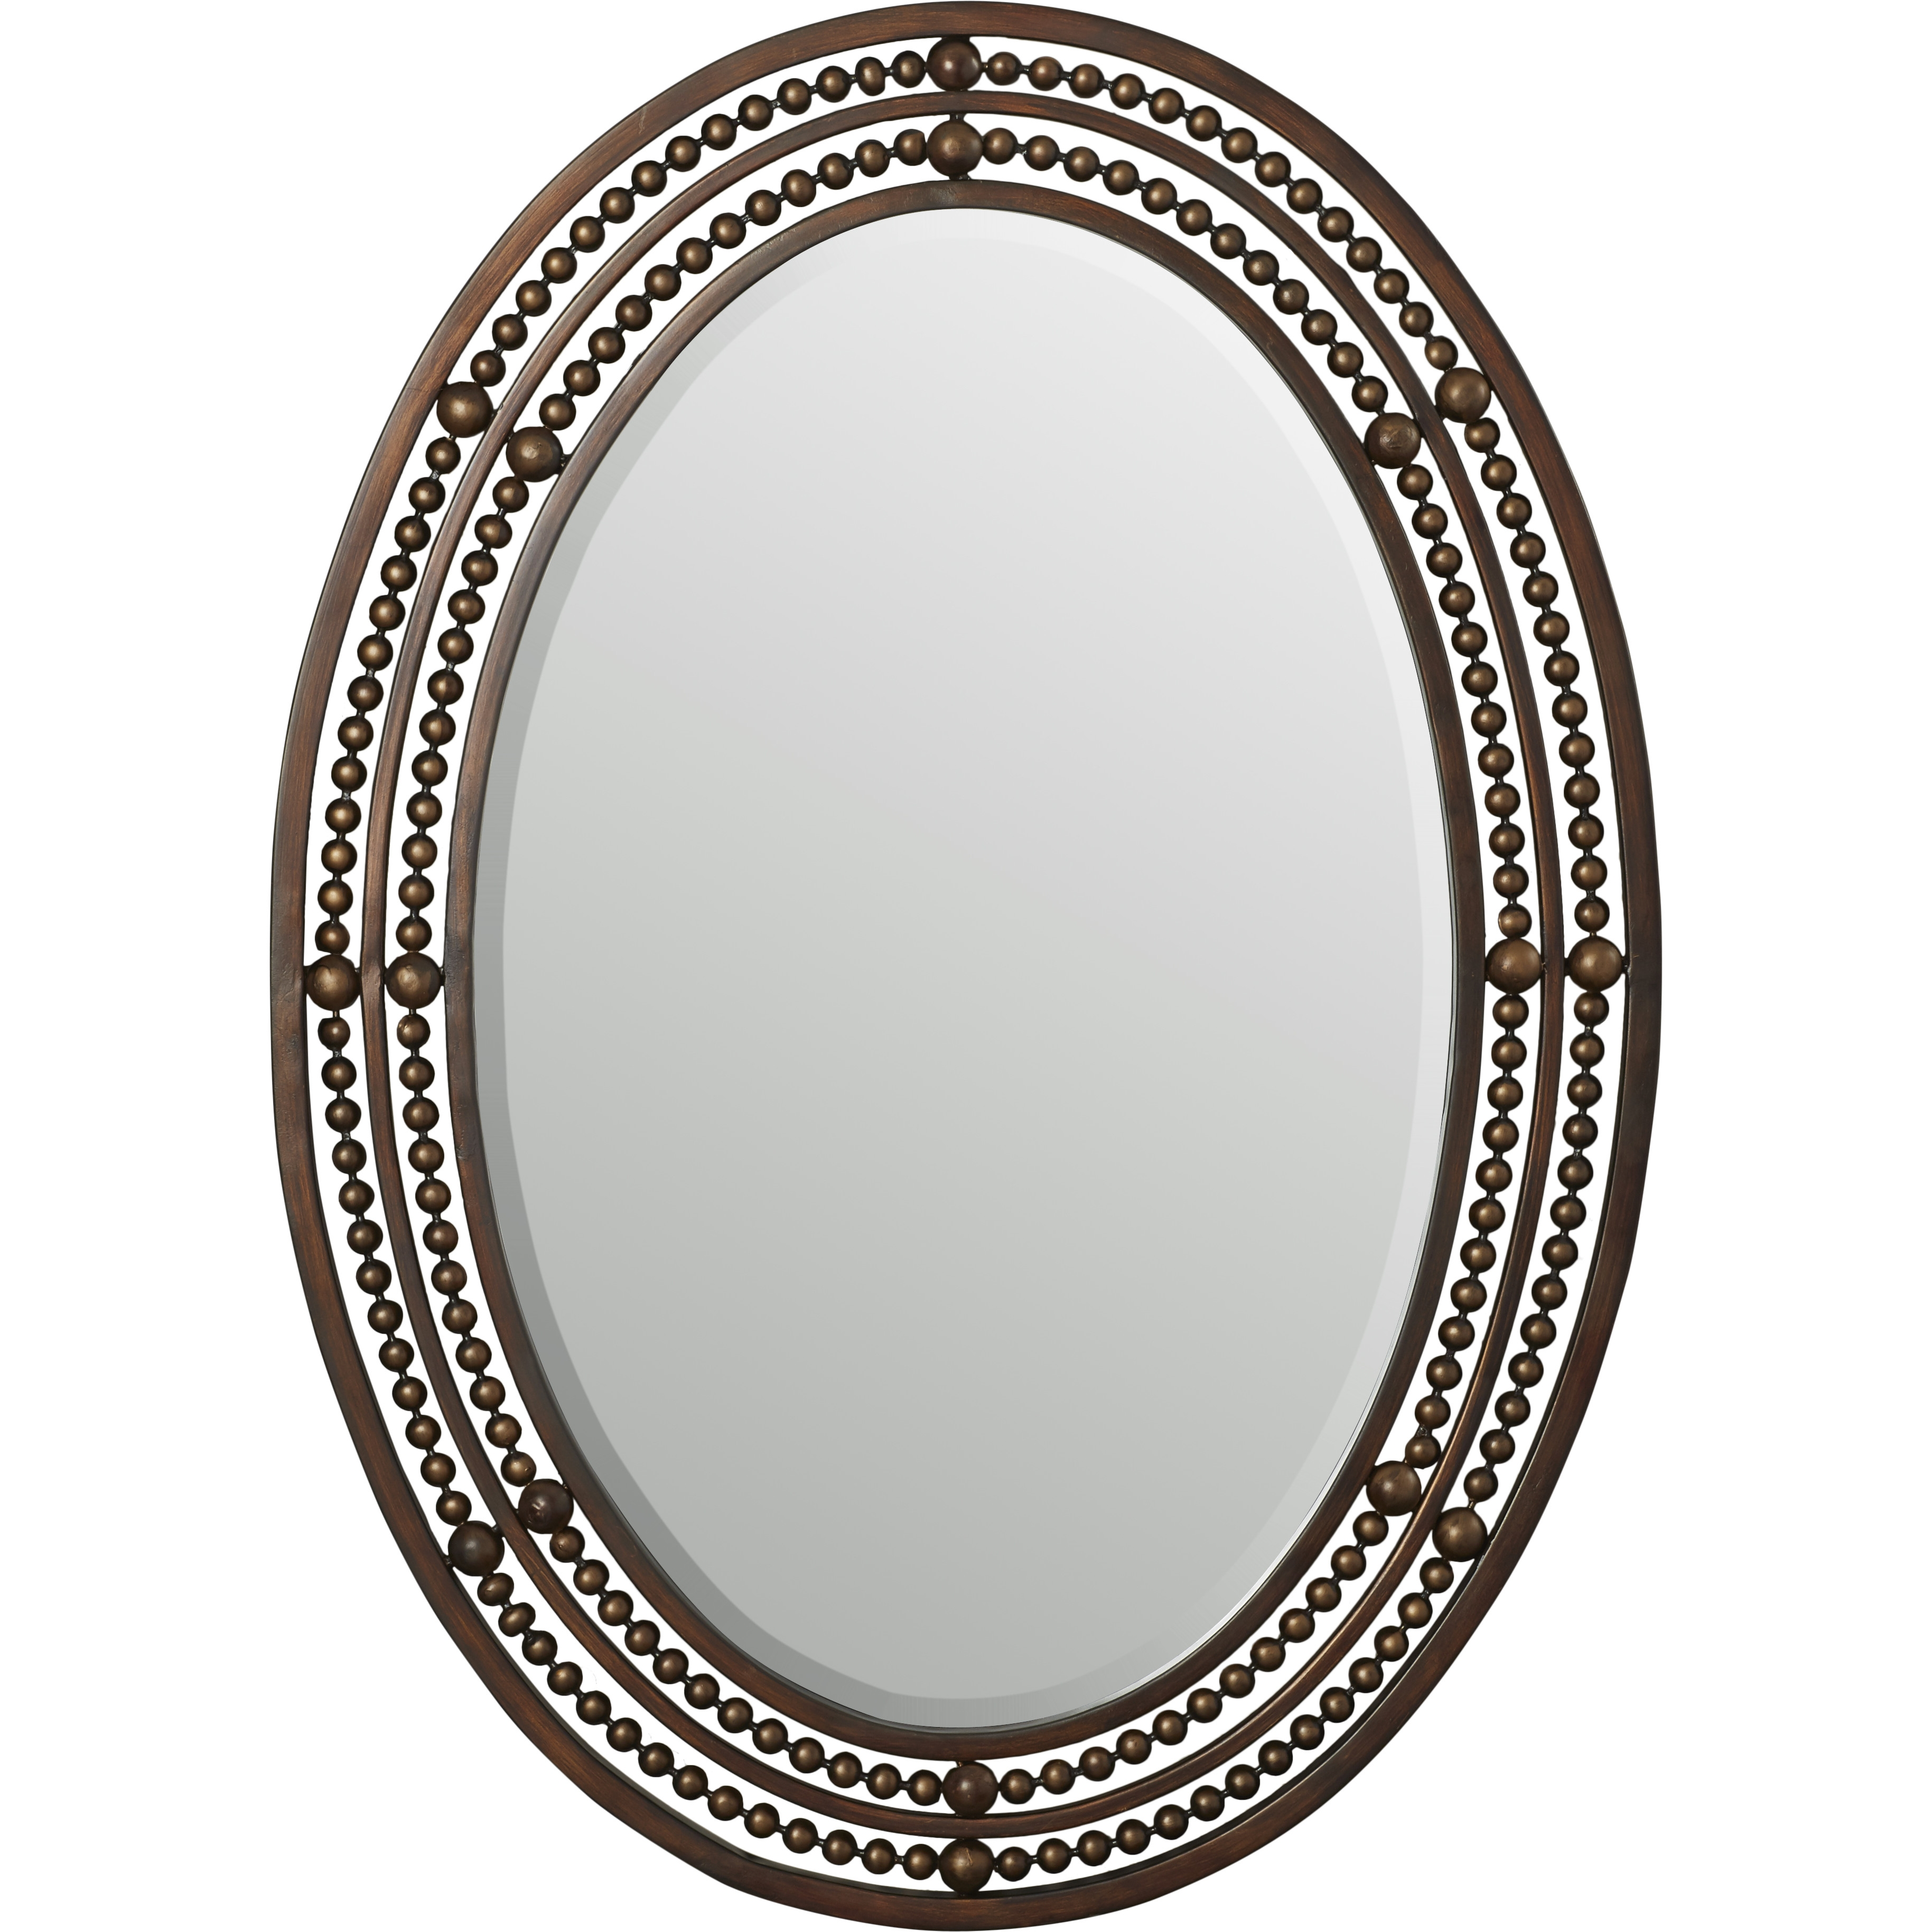 Traditional Oval Wall Mirrors